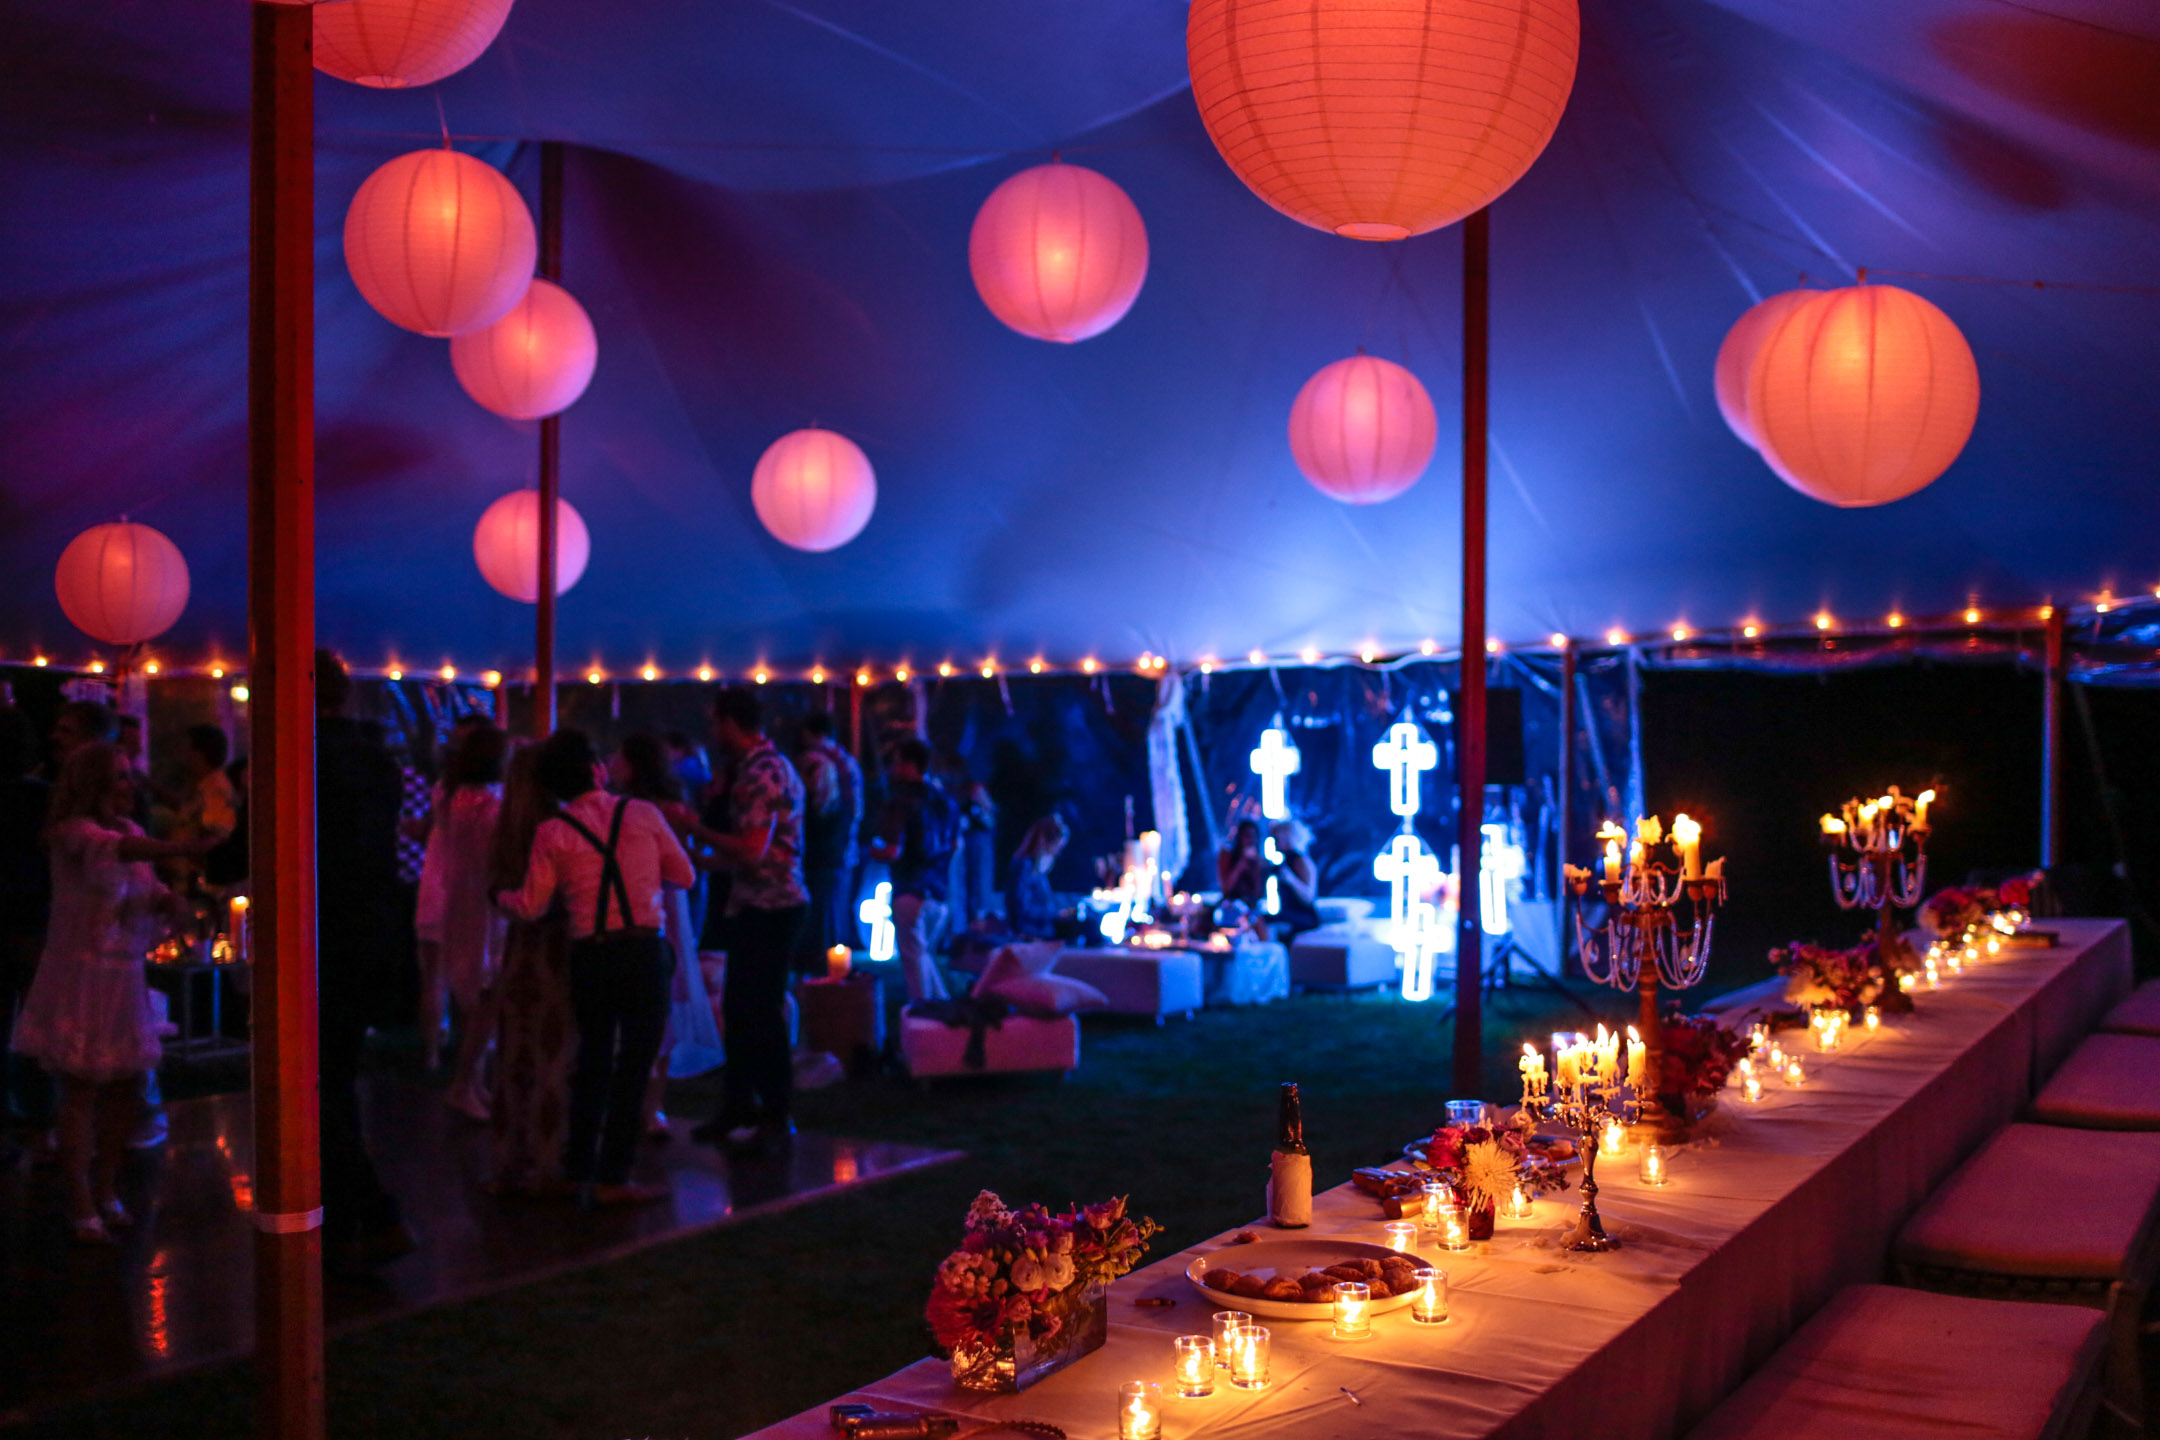 2eric_striffler_photography_event_party-24.jpg